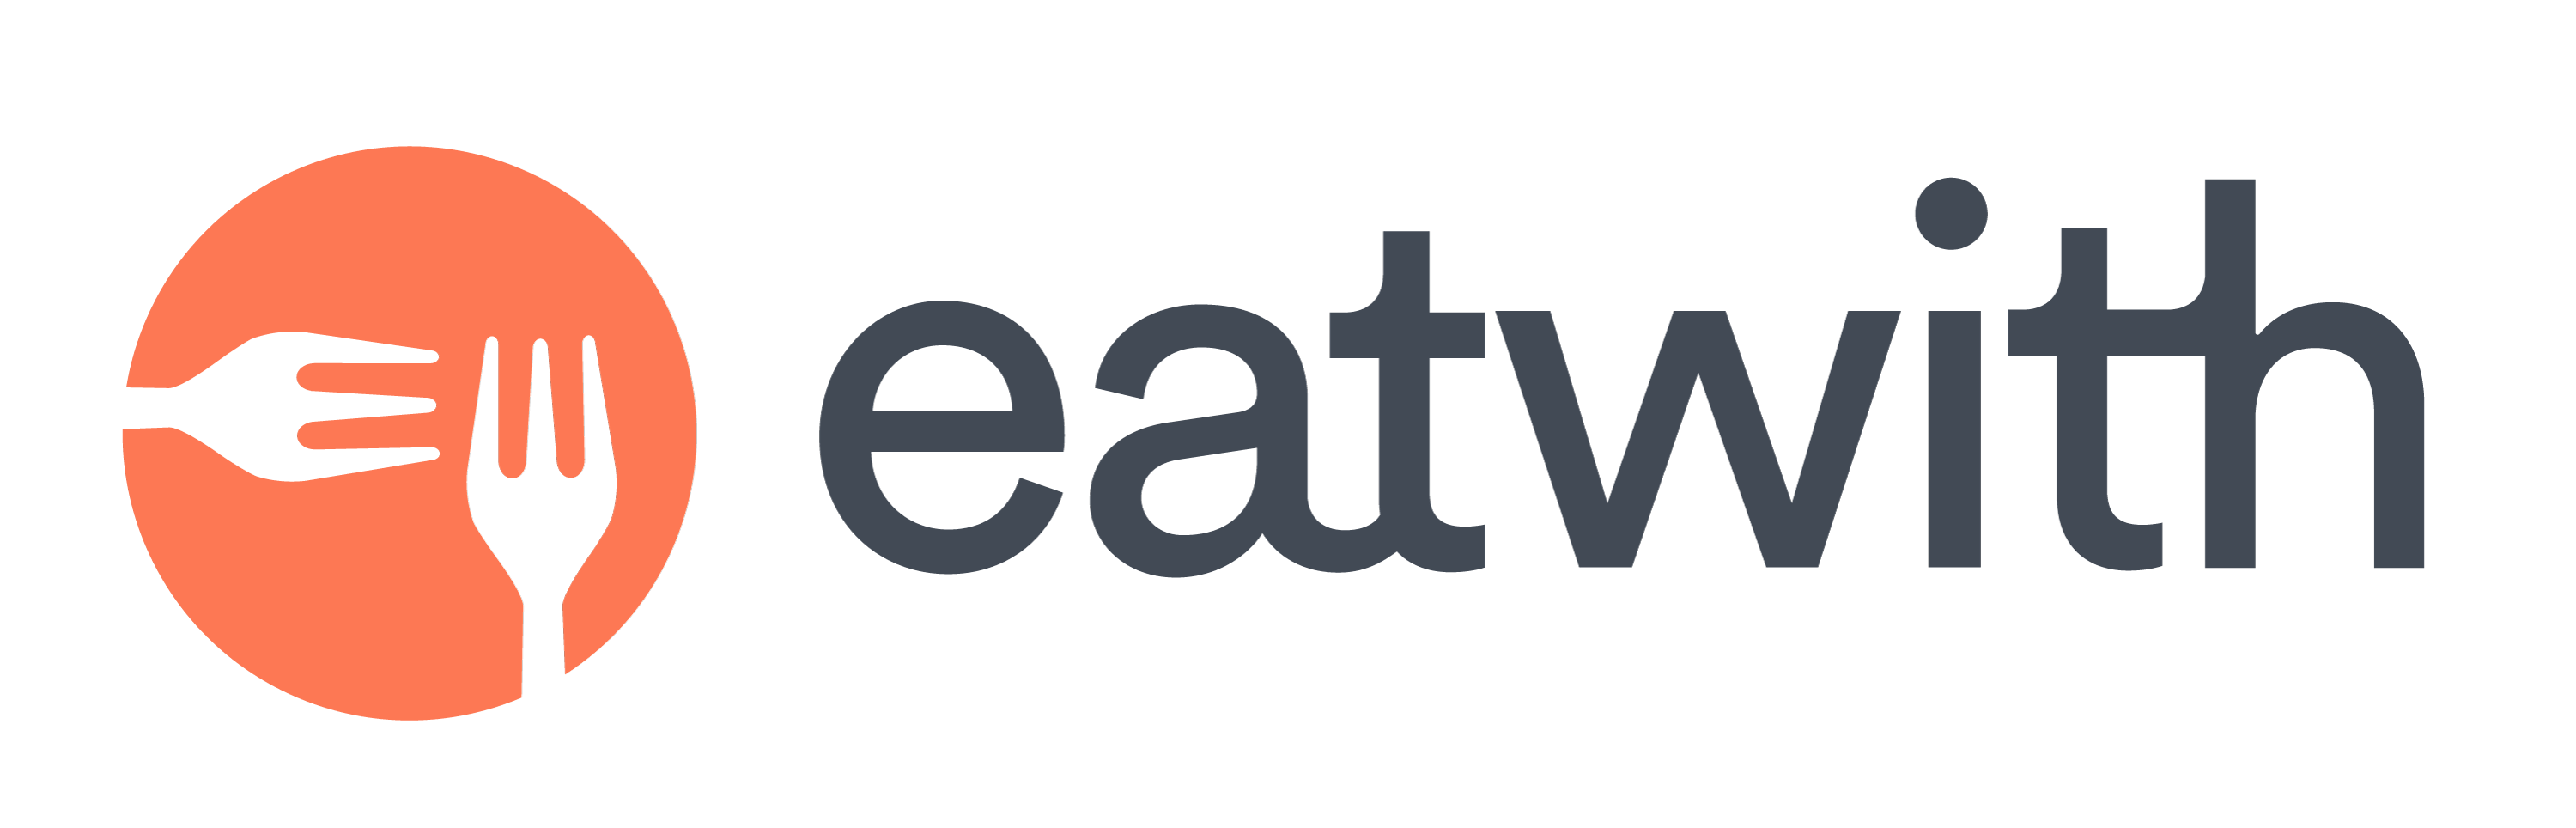 EatWith-logo-png